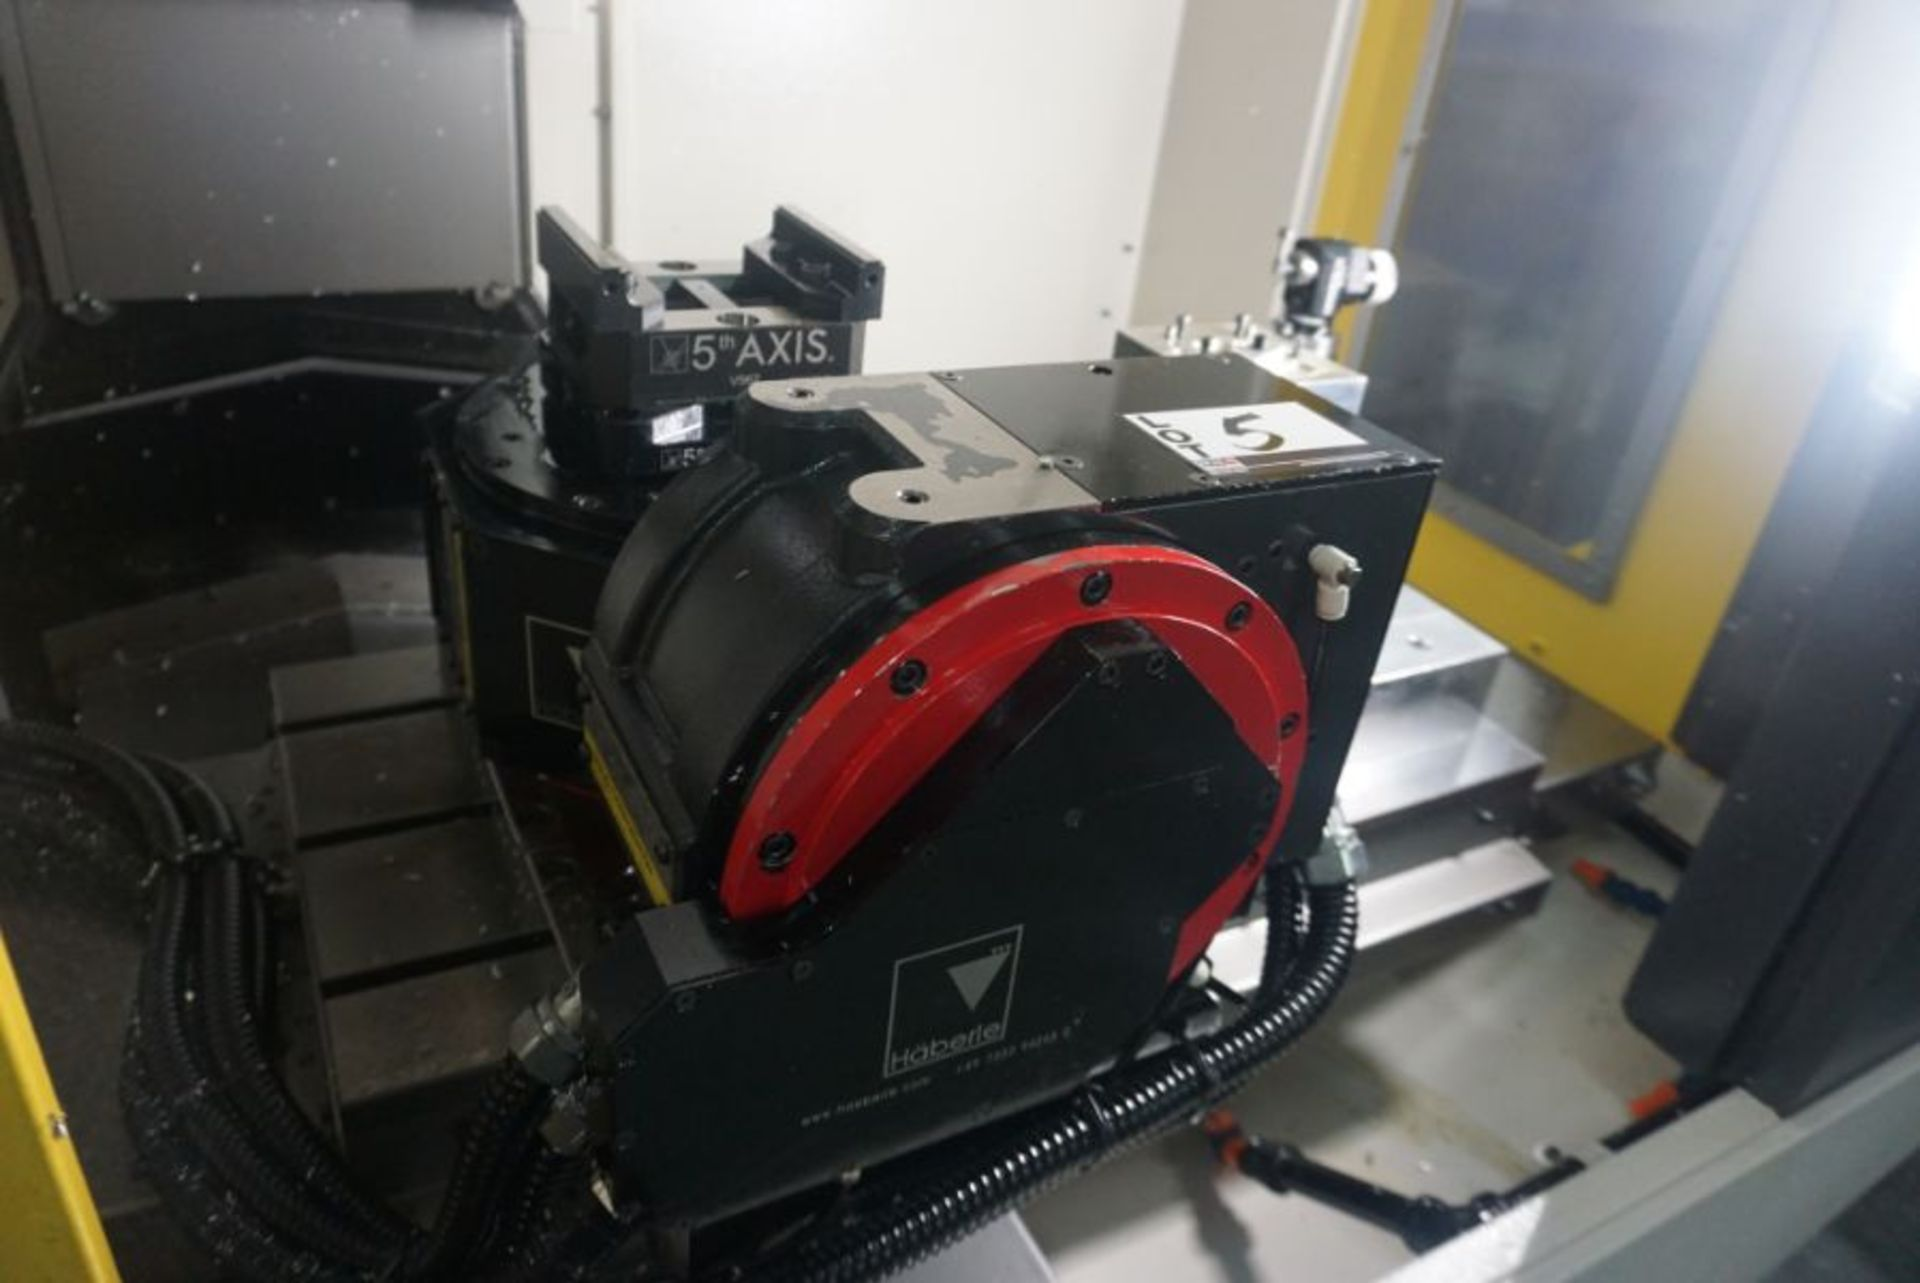 Haberle Fanuc DDRiB 5 Axis Rotary Table, s/n P183DXN18, New 2018 - Image 2 of 3